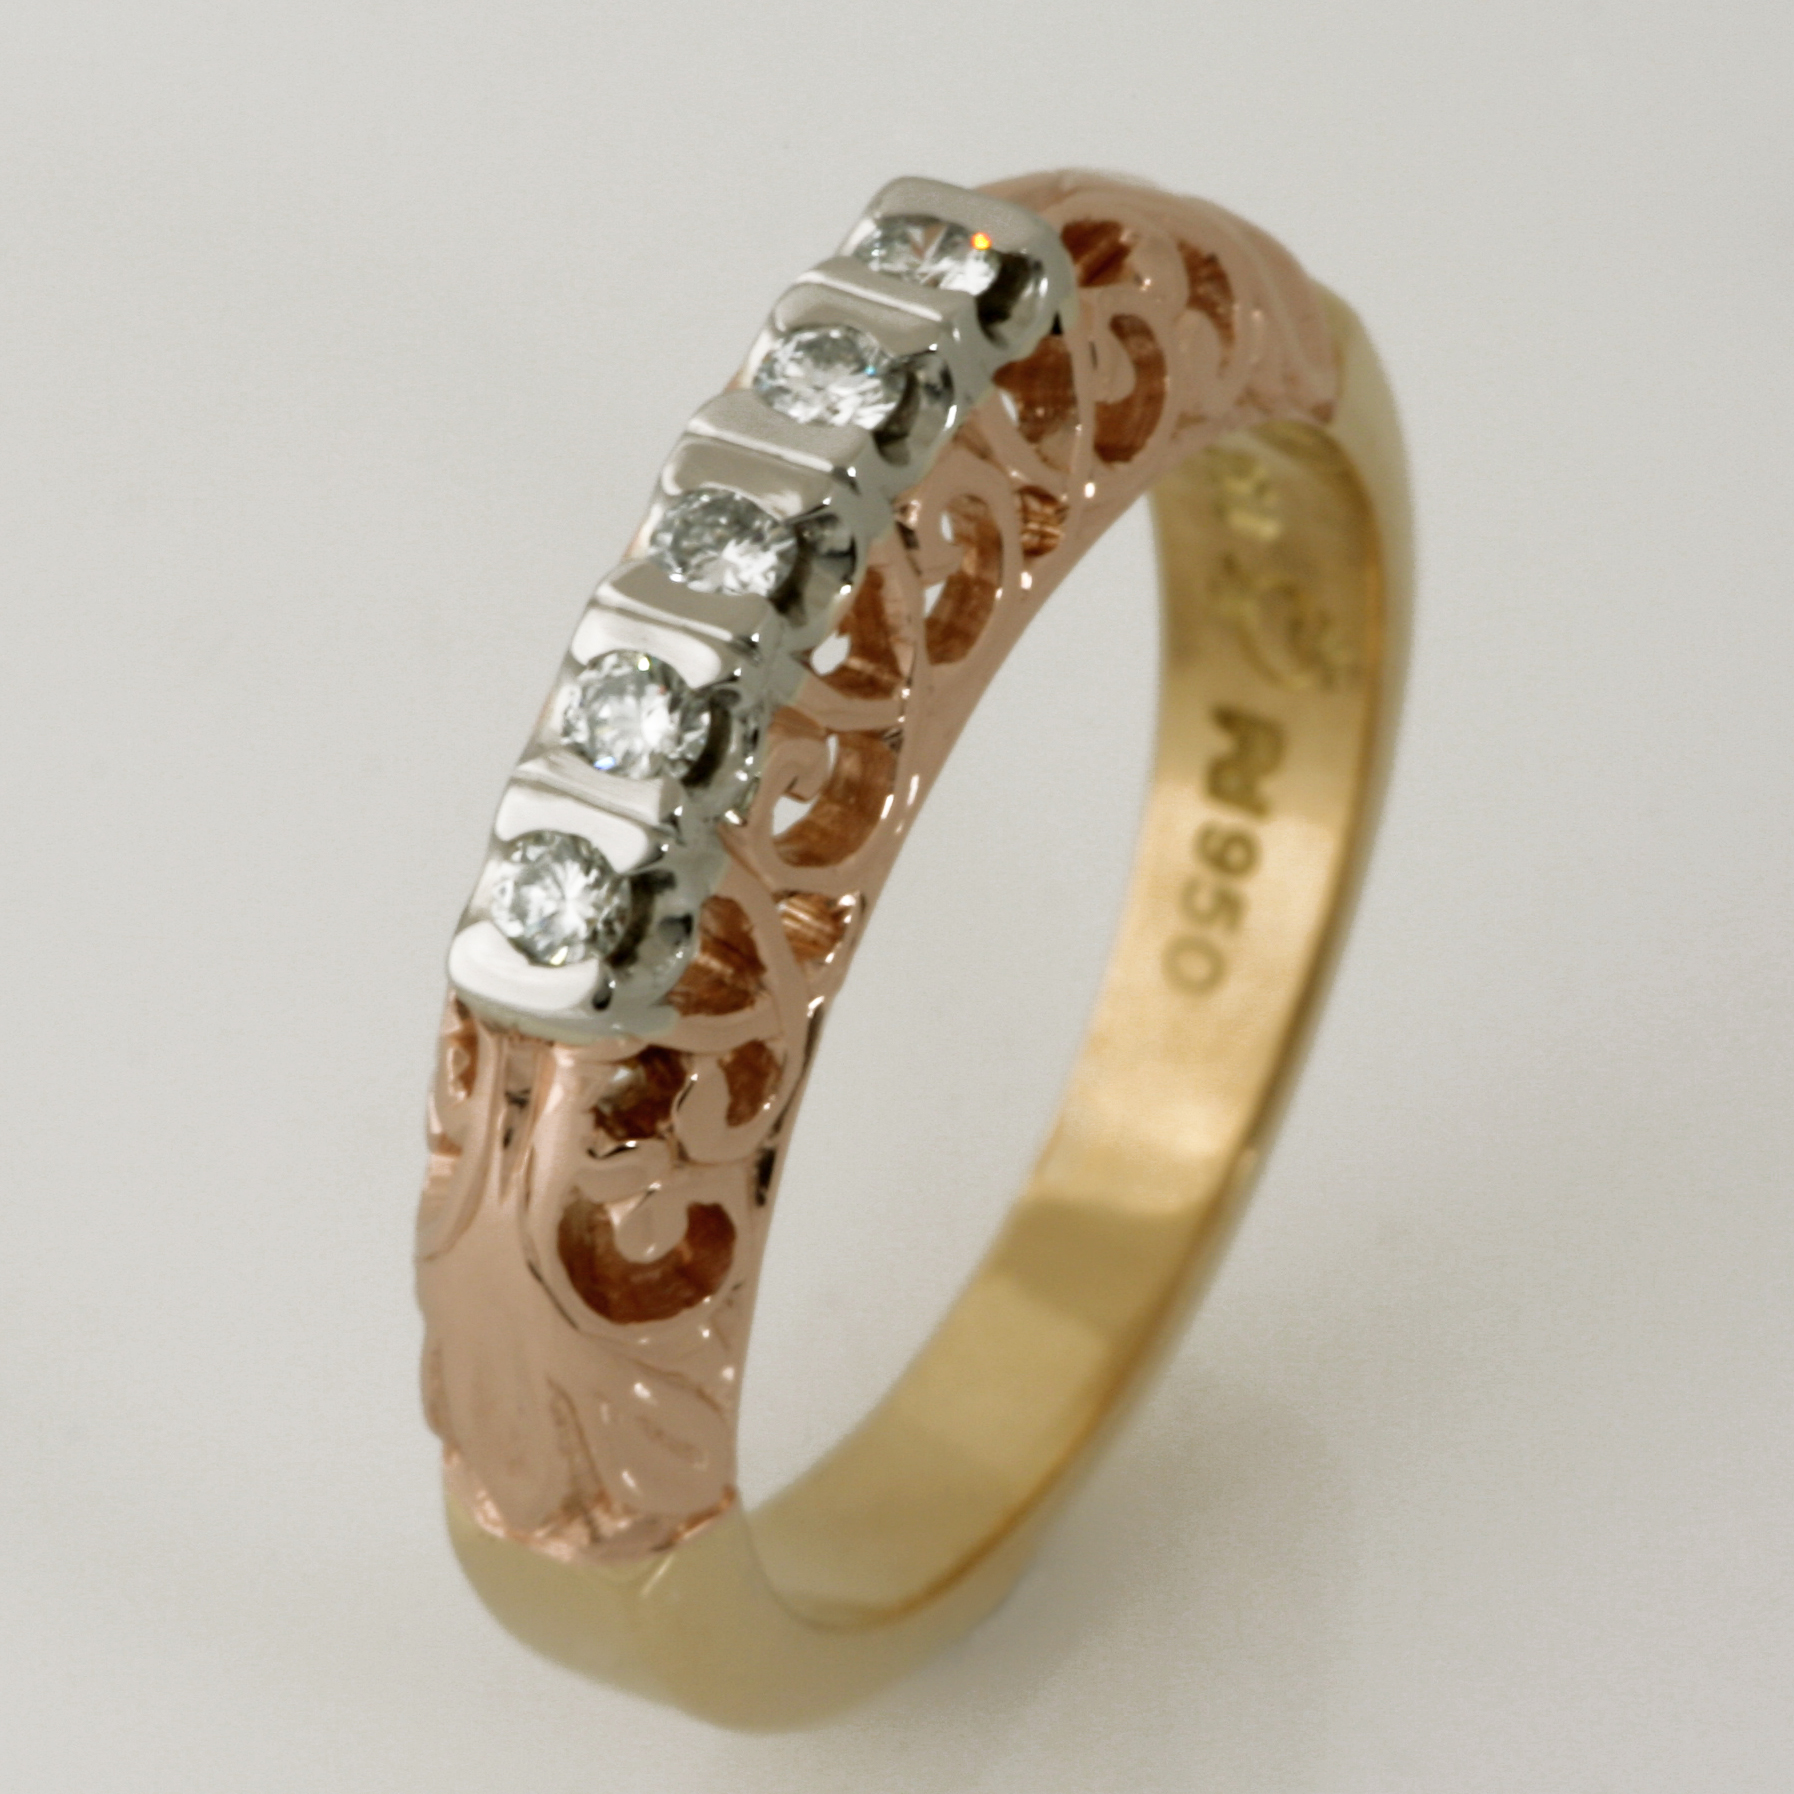 Handmade ladies 18ct yellow & rose gold and palladium diamond ring